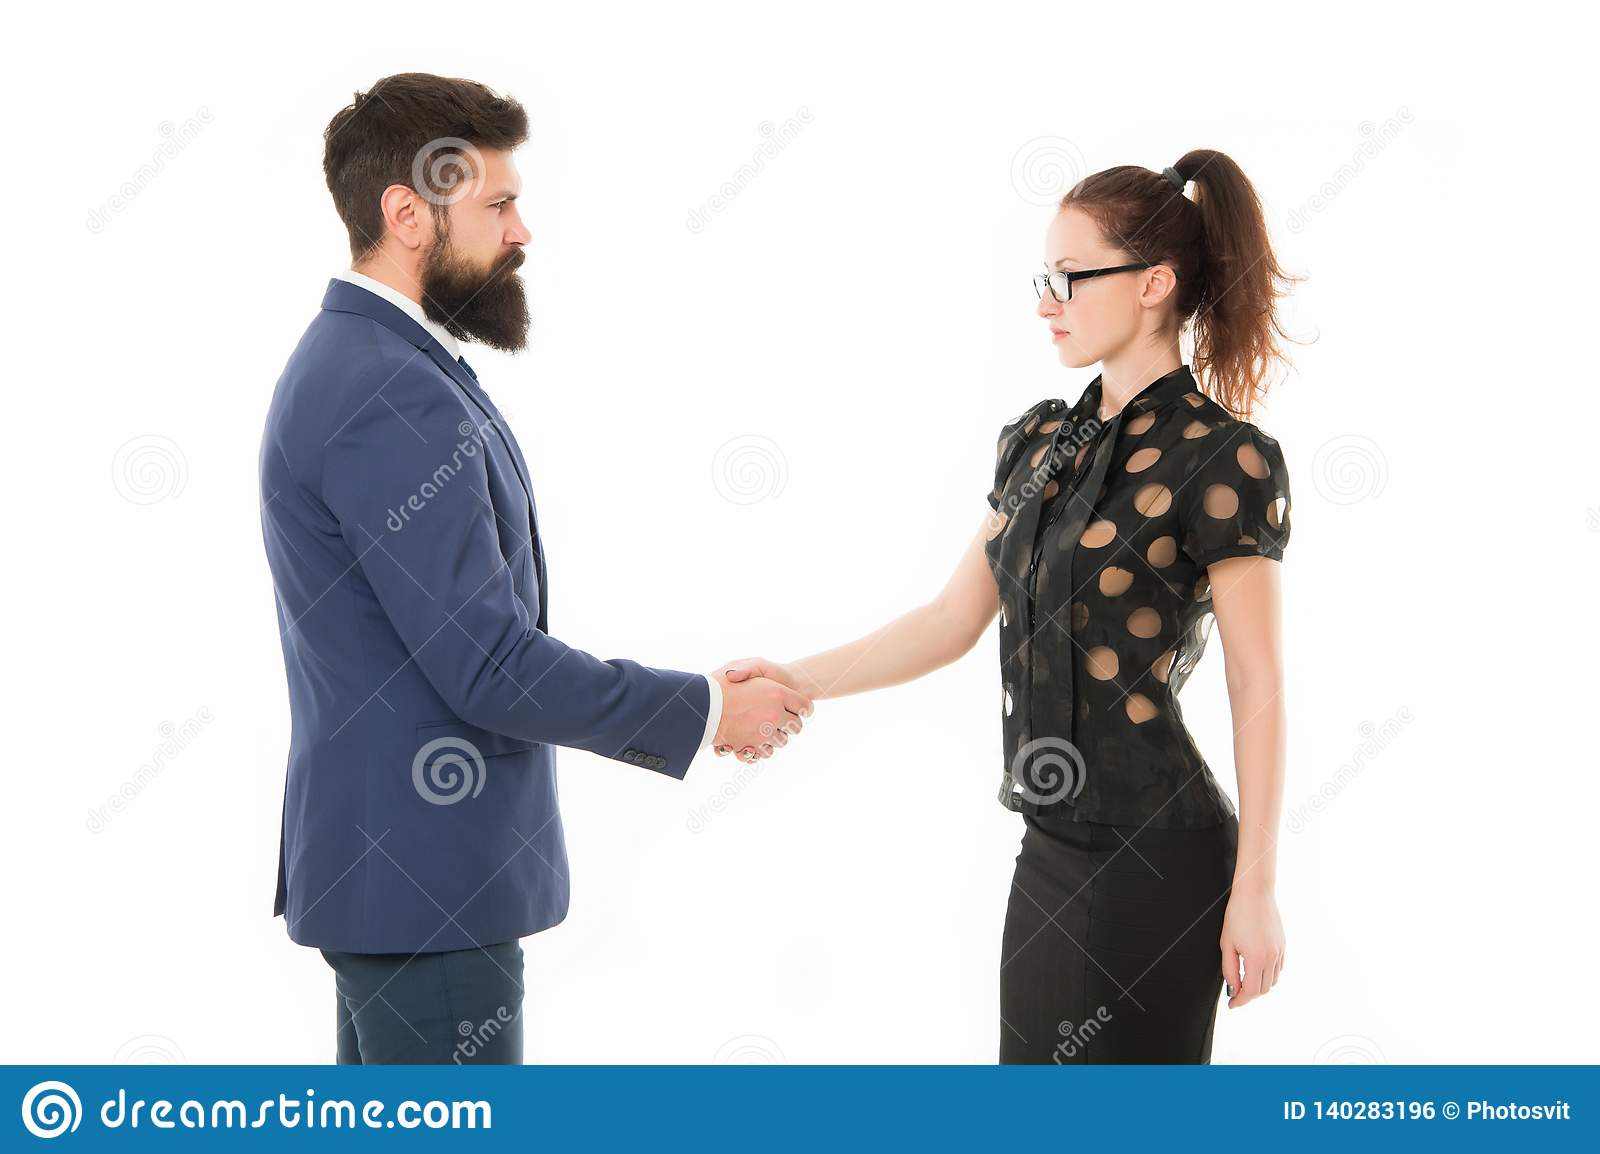 We have a deal. partnership in business. man and woman shaking hands. bearded man and woman. Business couple